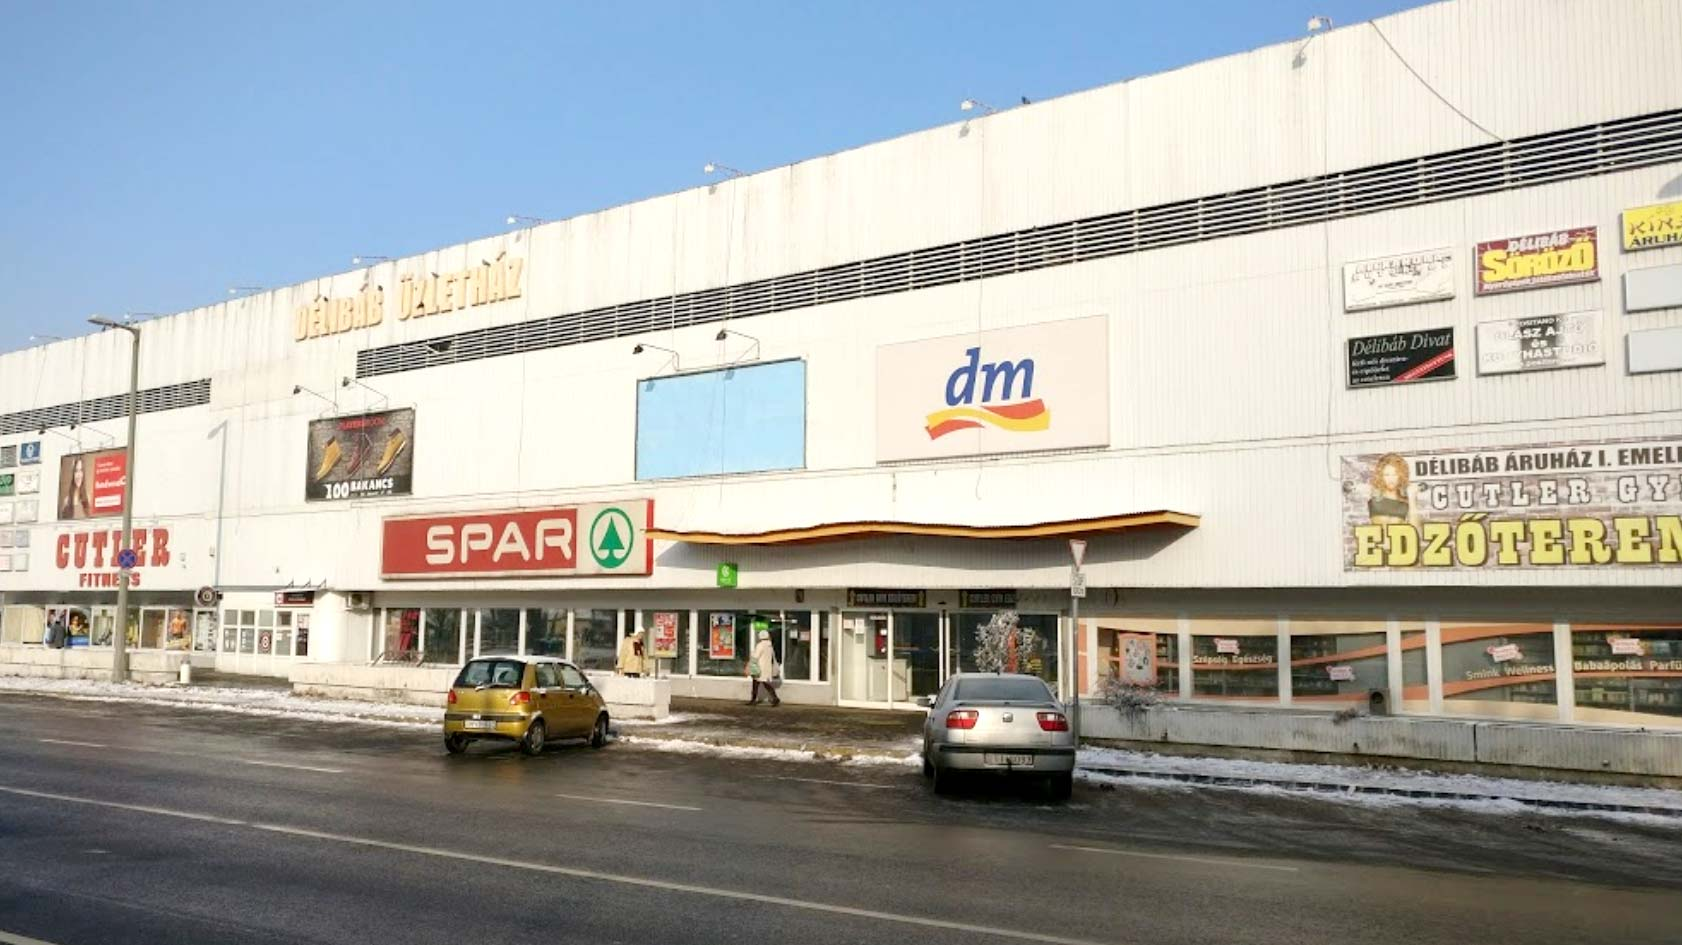 Délibáb shopping center